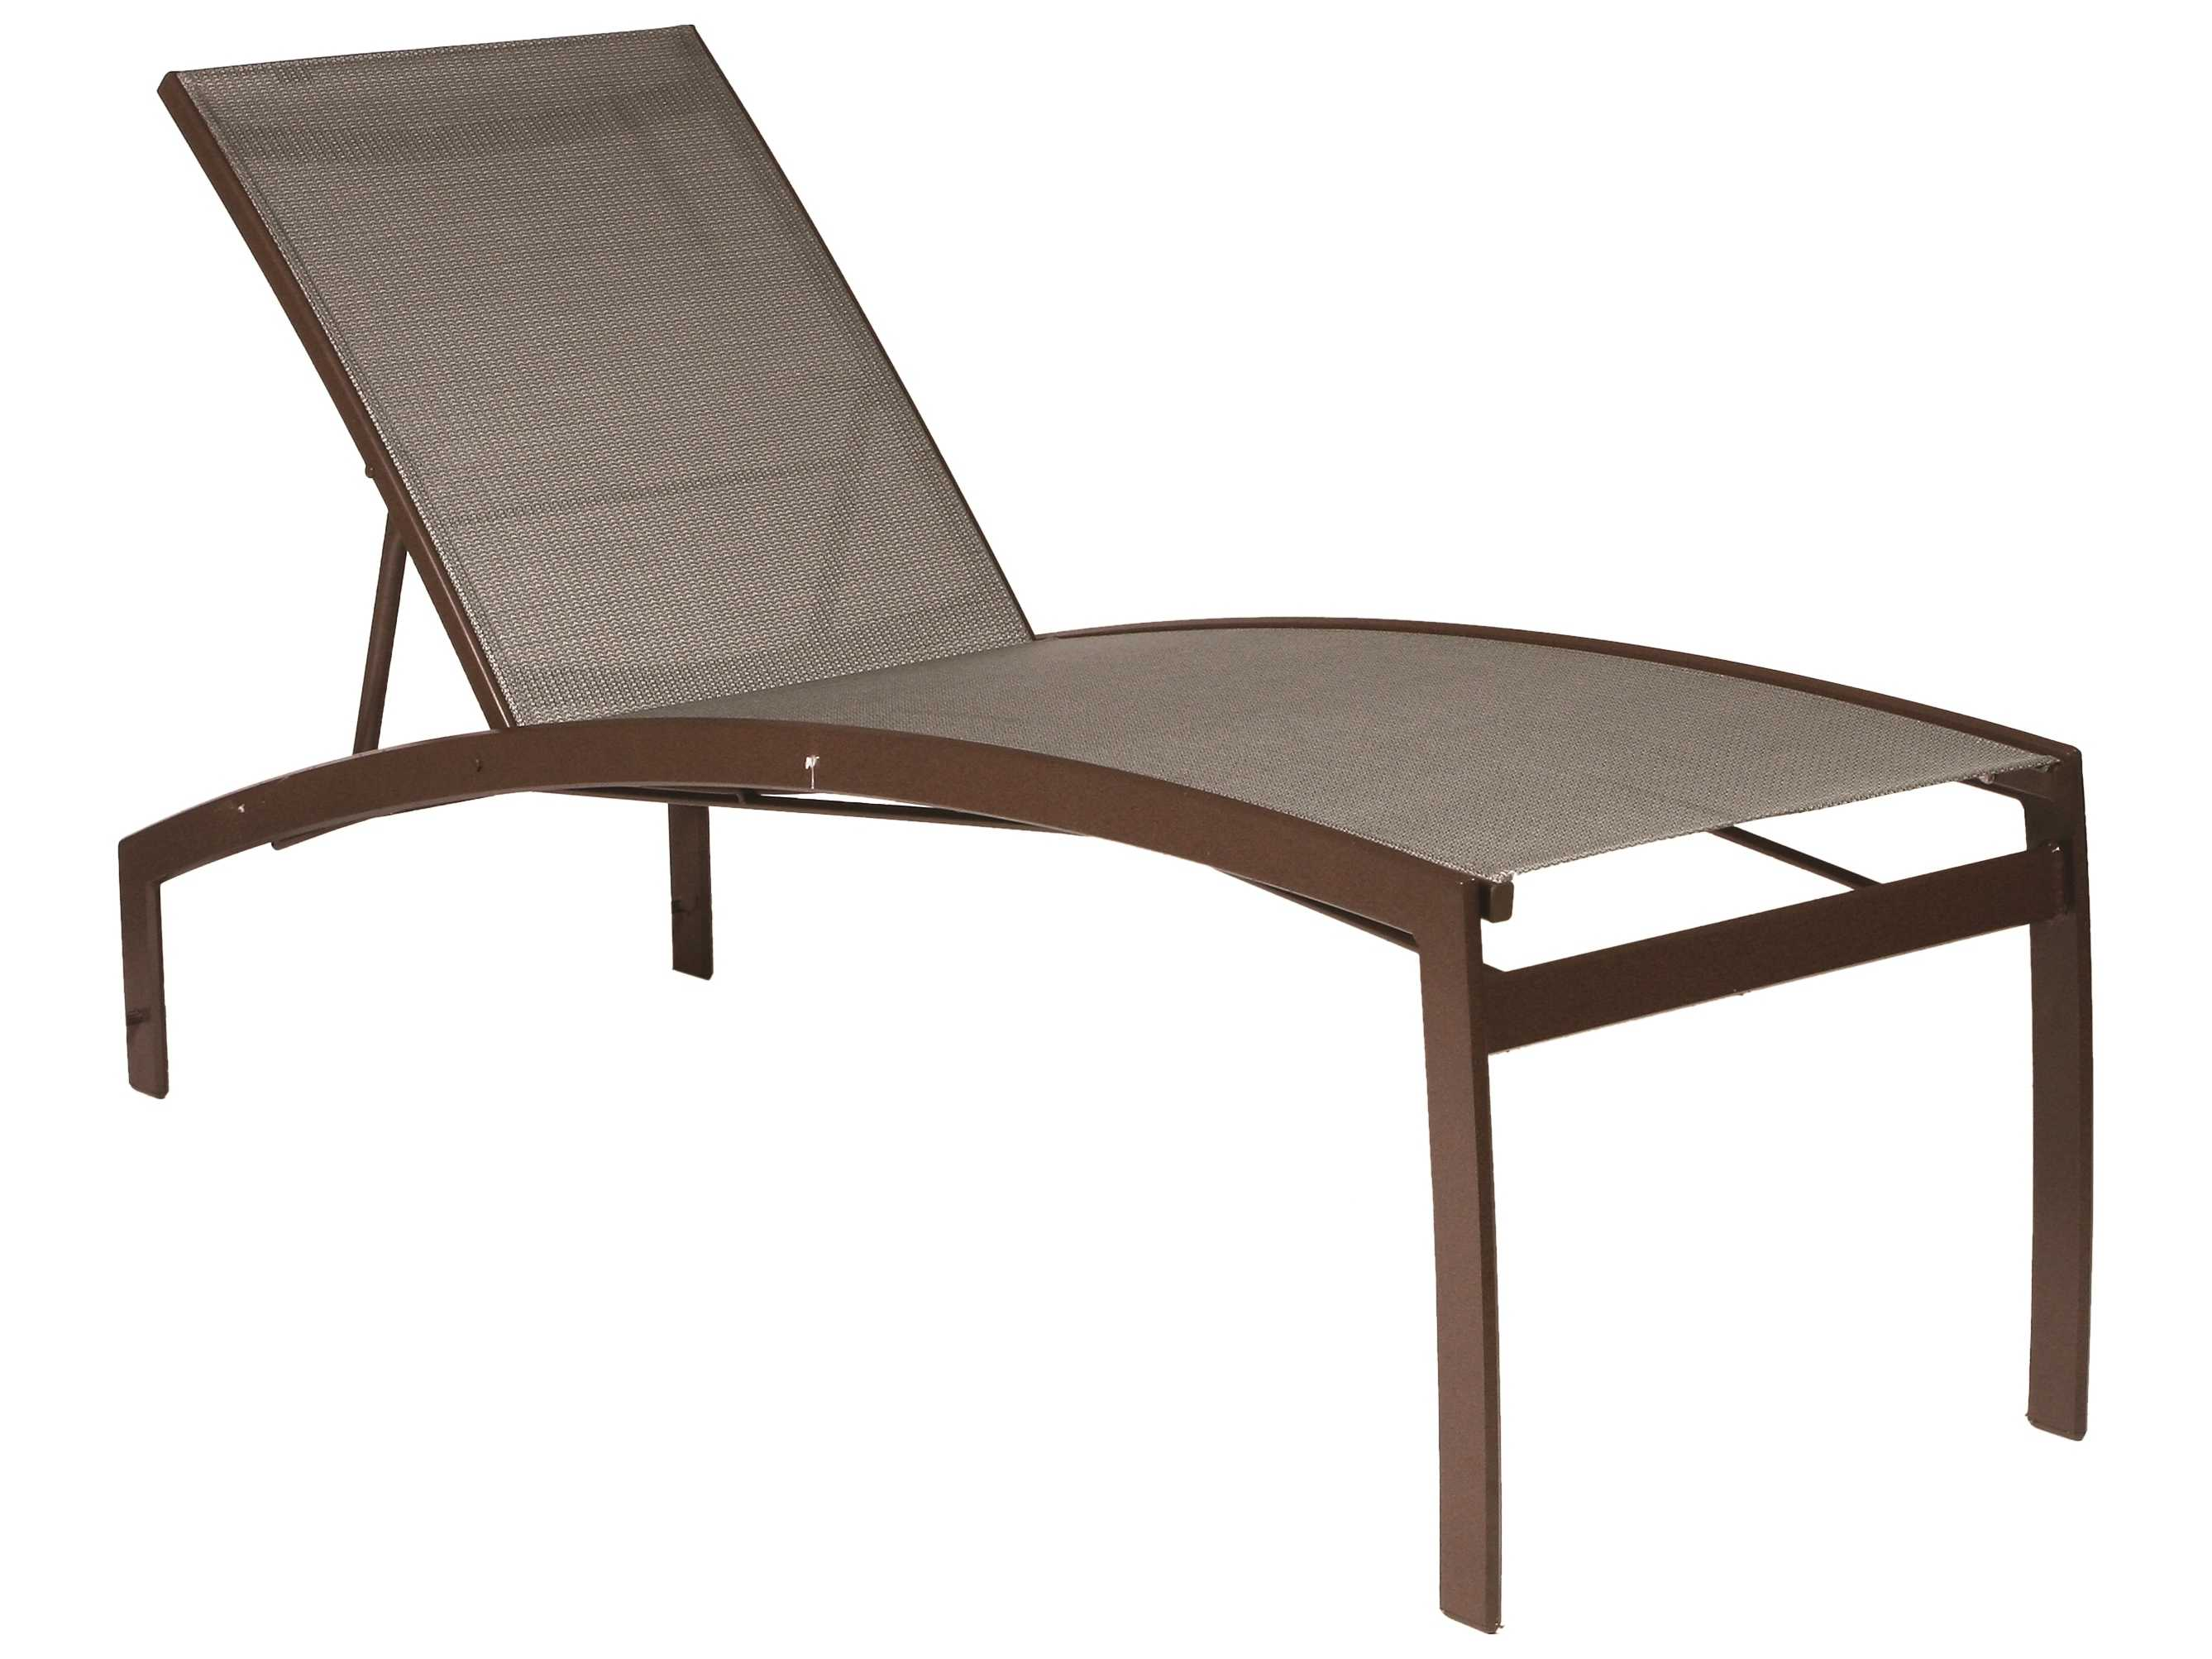 Suncoast vision sling cast aluminum chaise lounge 7991 for Cast aluminum chaise lounge